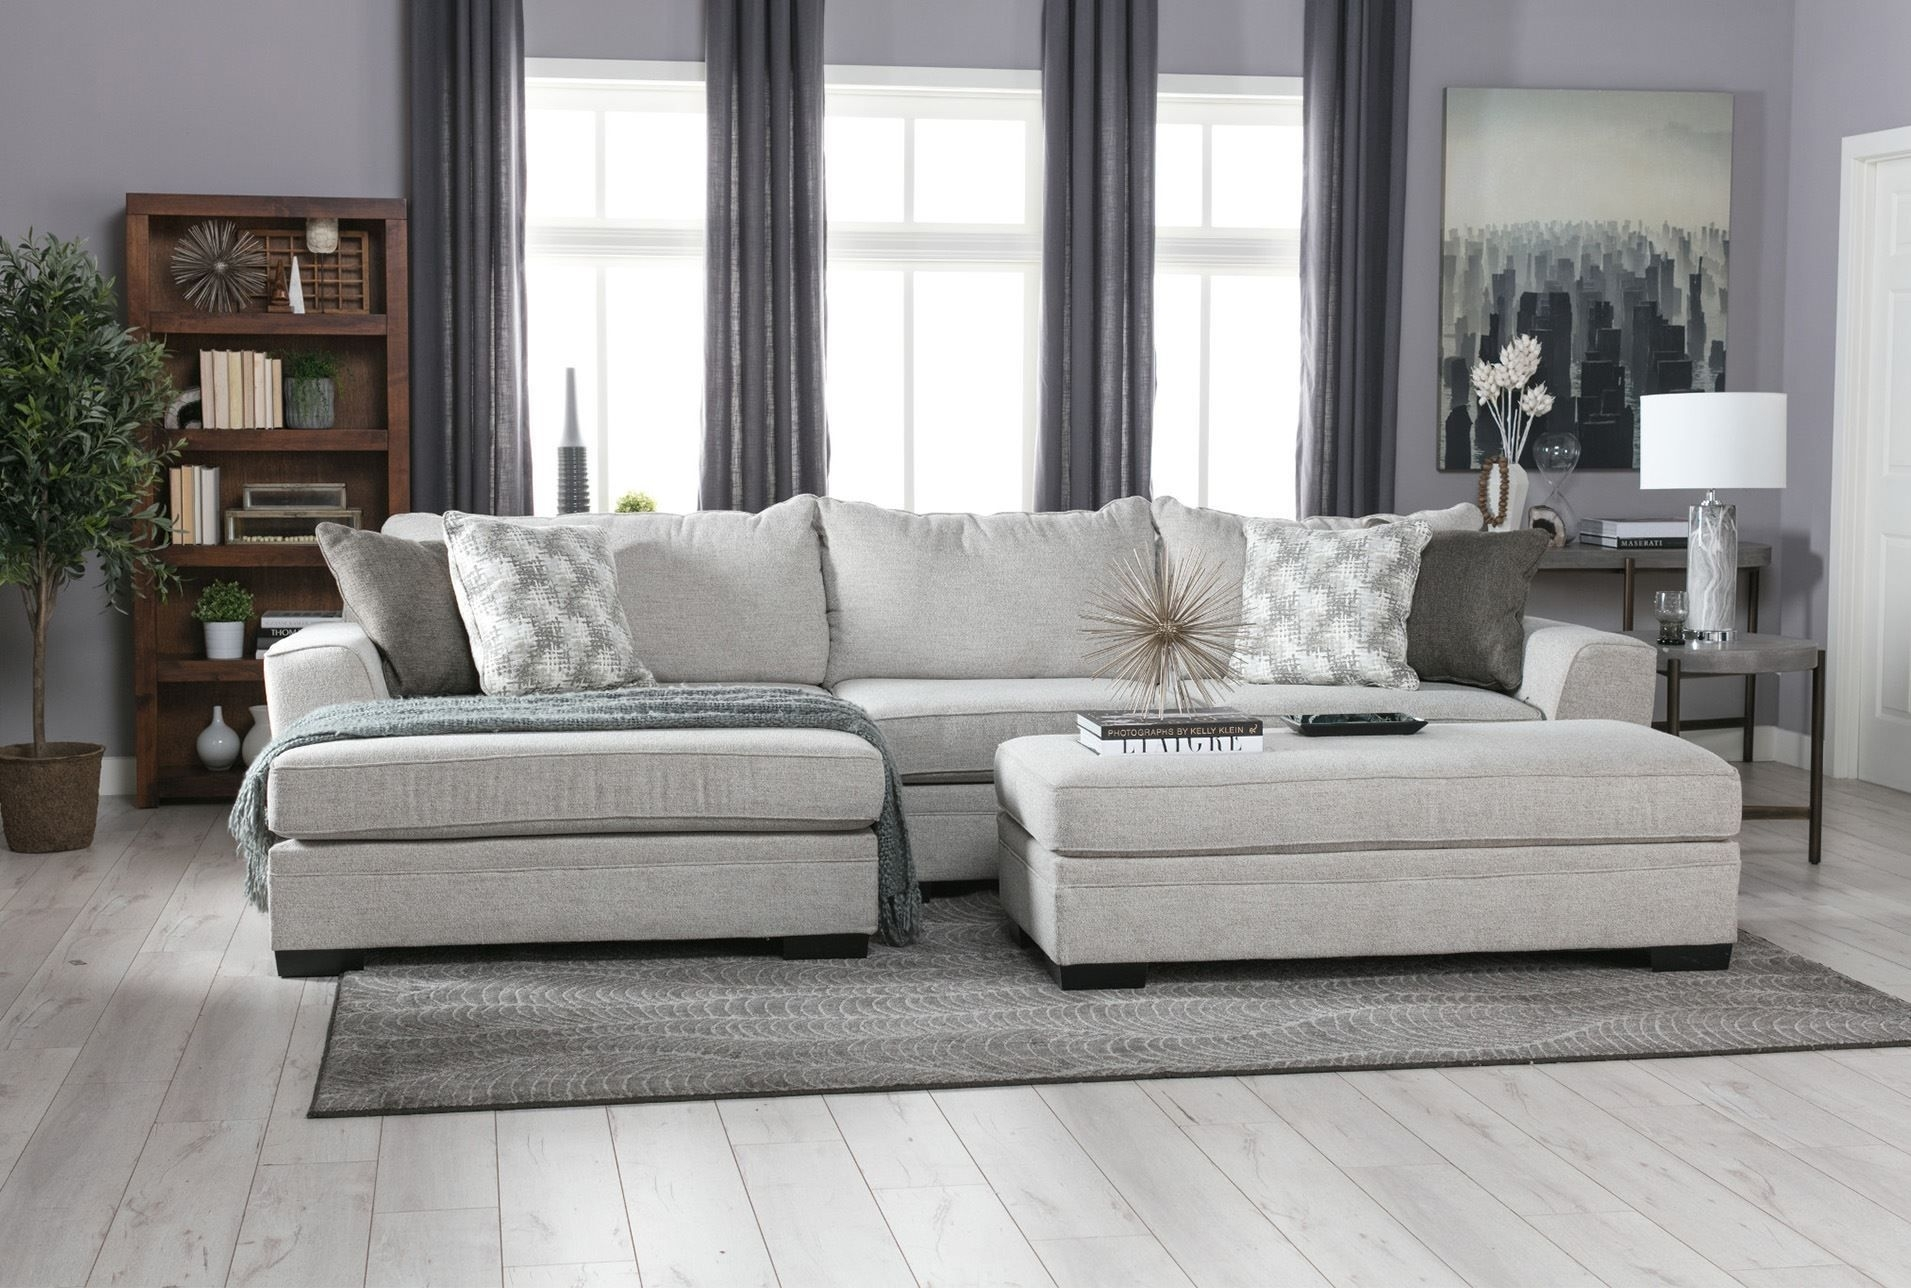 Delano 2 Piece Sectional W/laf Oversized Chaise | Sylvia Son Inside Arrowmask 2 Piece Sectionals With Laf Chaise (View 25 of 25)